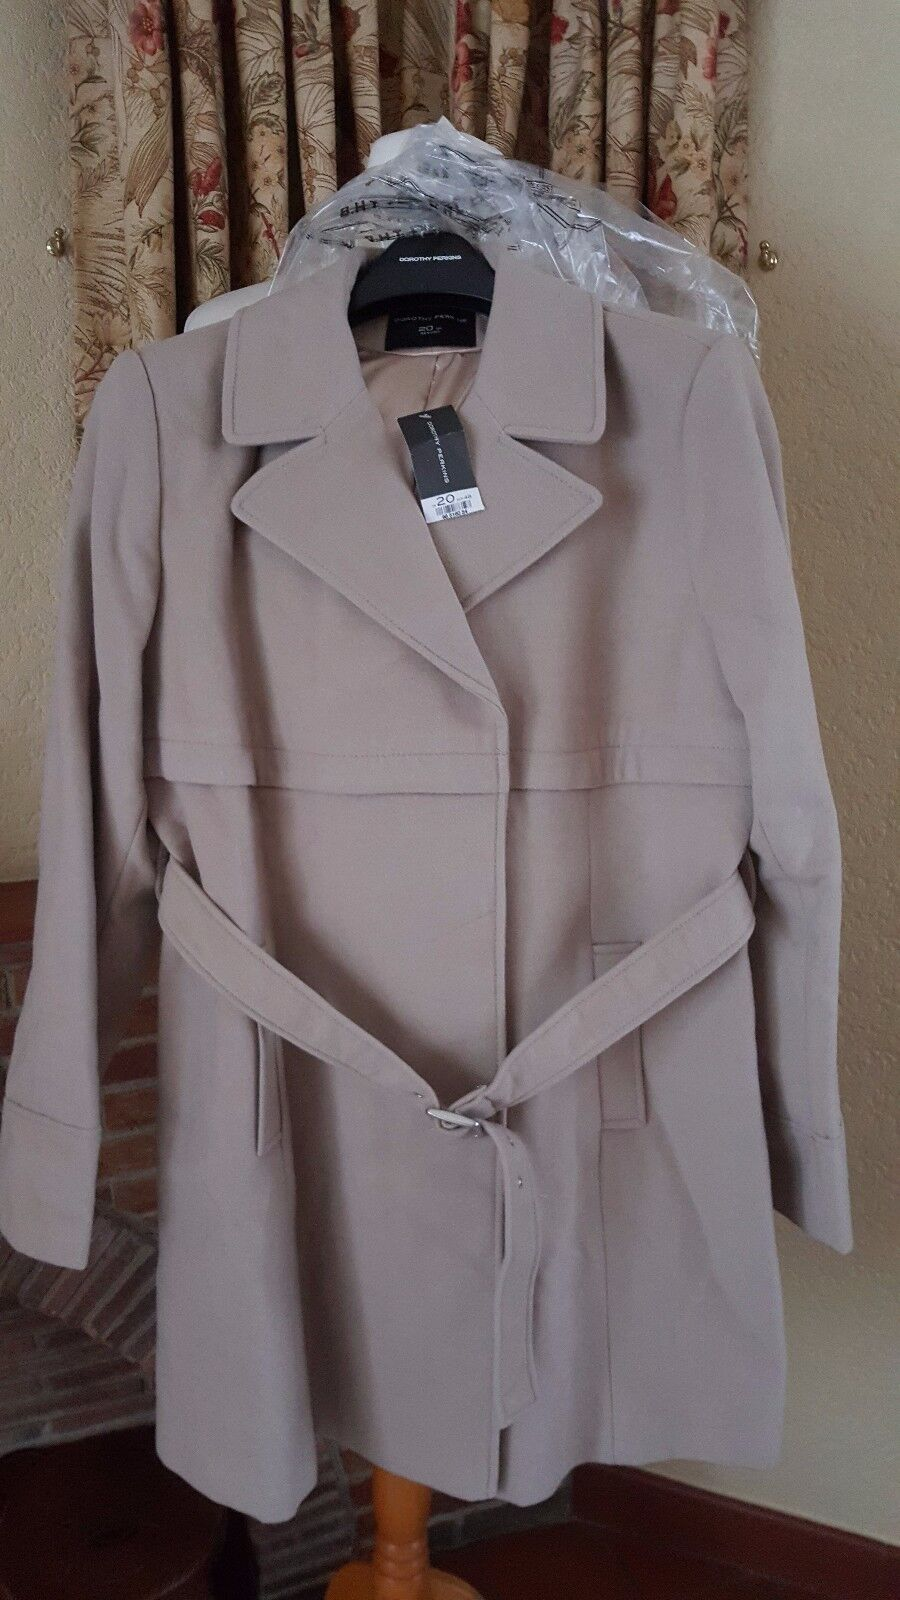 LADIES CAMEL BEIGE COAT FROM DgoldTHY PERKINS - NEW - SIZE 20 -REDUCED